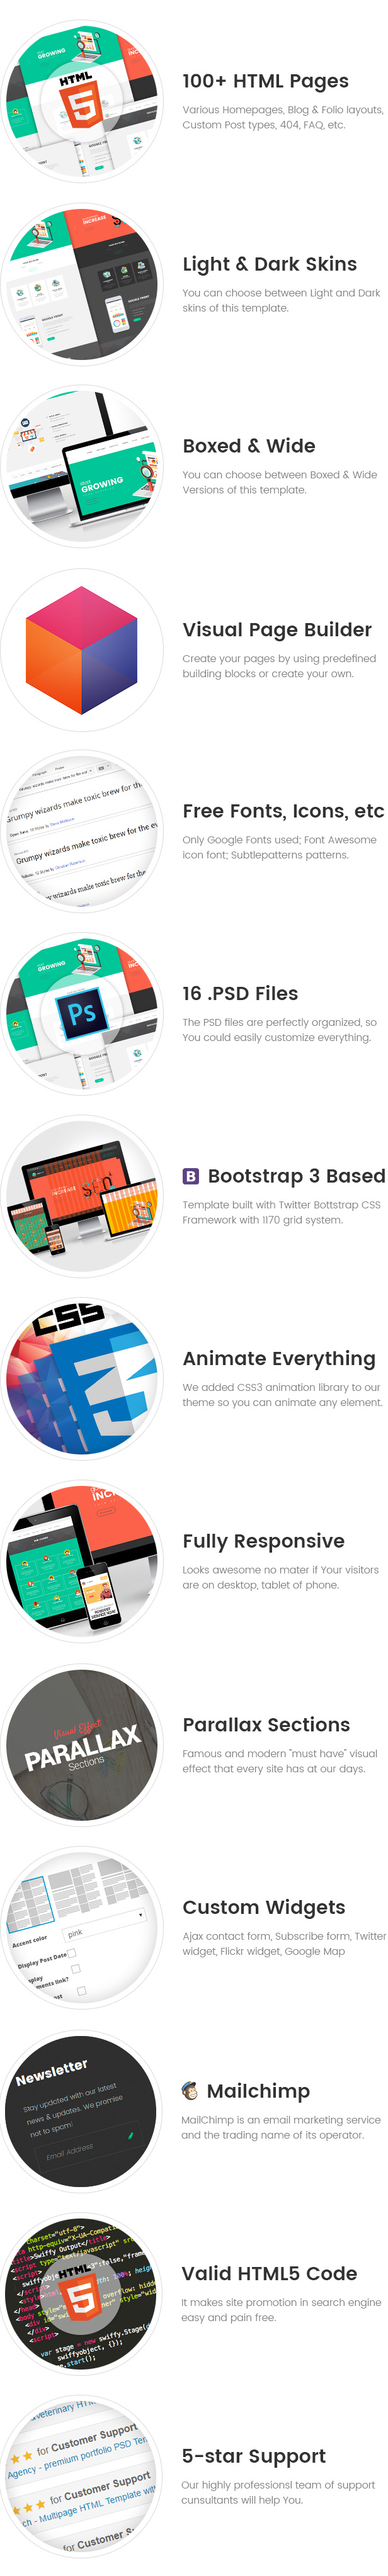 SeoBoost - SEO/Digital Company HTML Template with Visual Page Builder